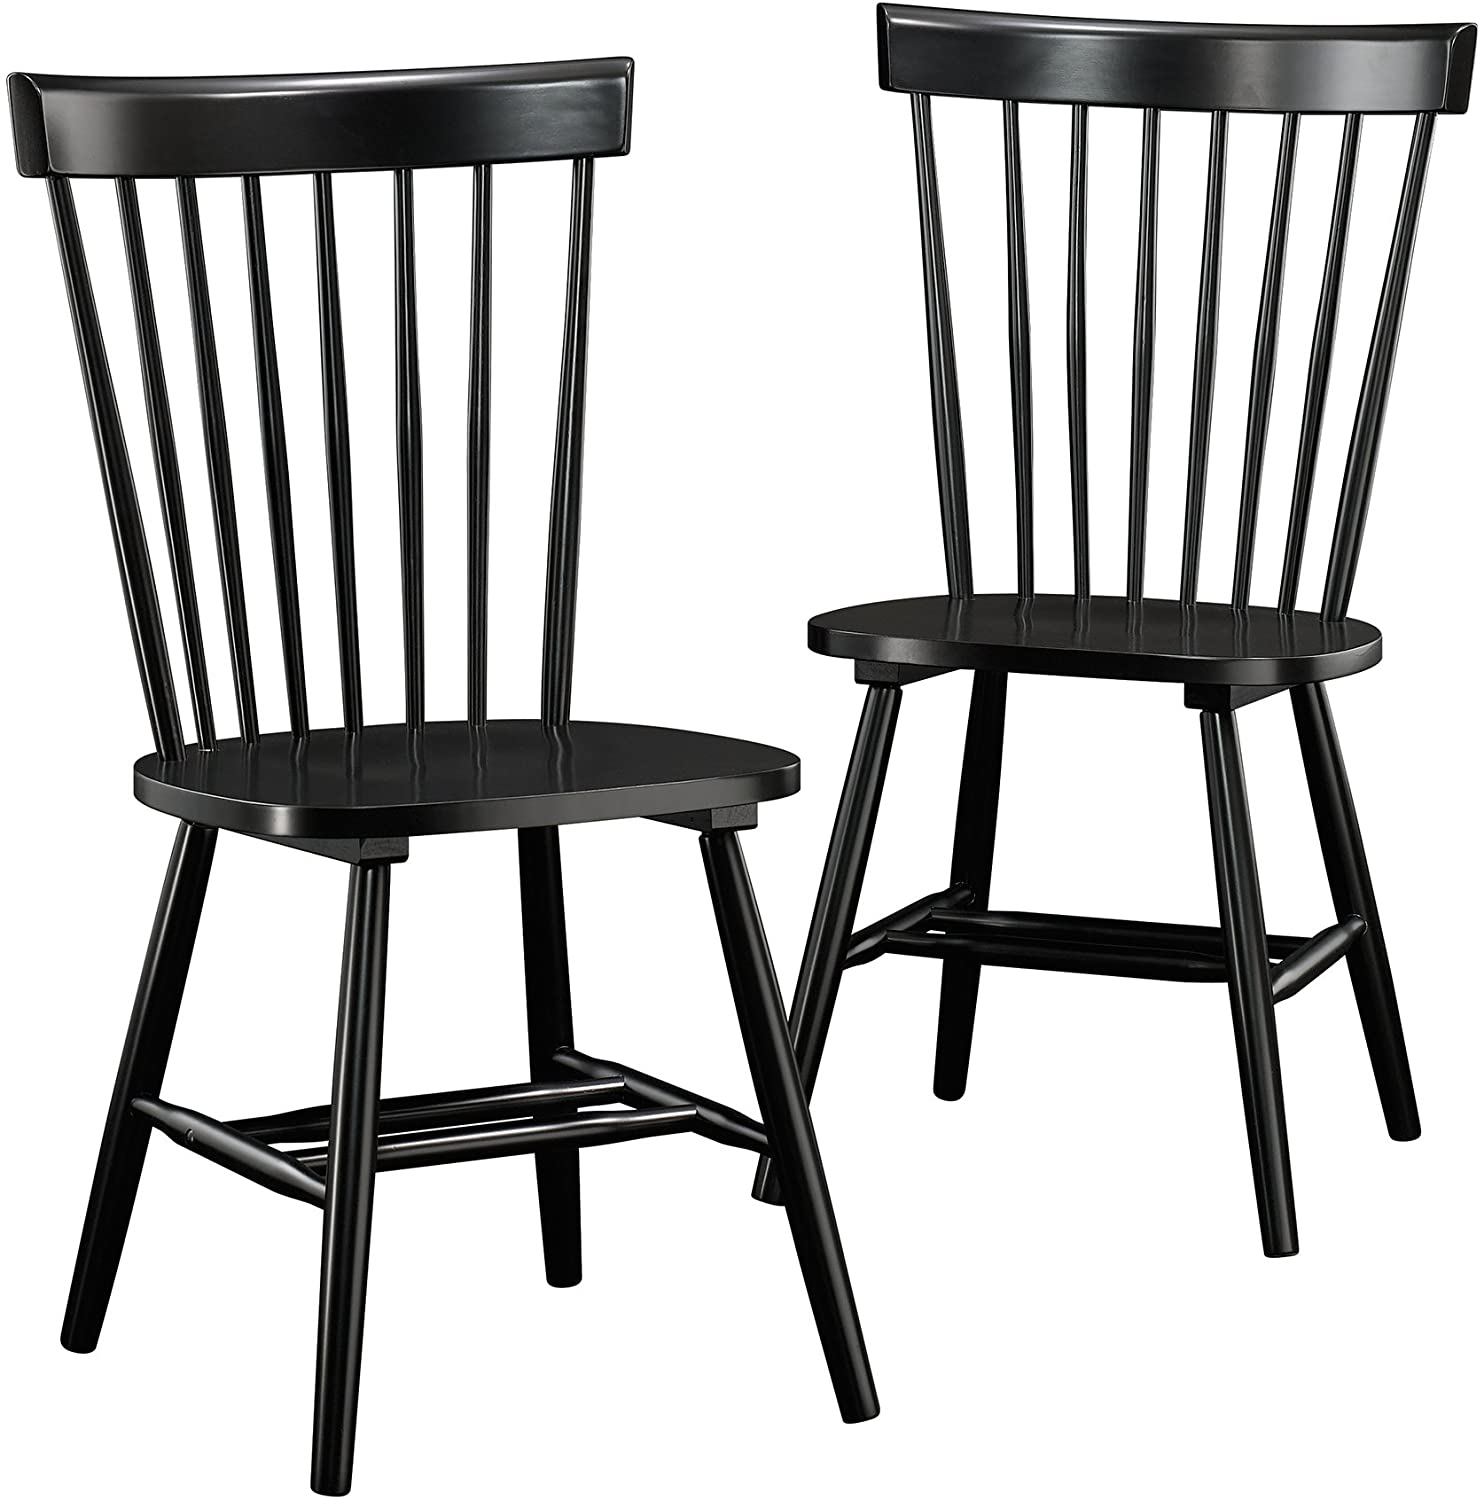 Best for lumbar support:Sauder New Grange Spindle Back Chairs.